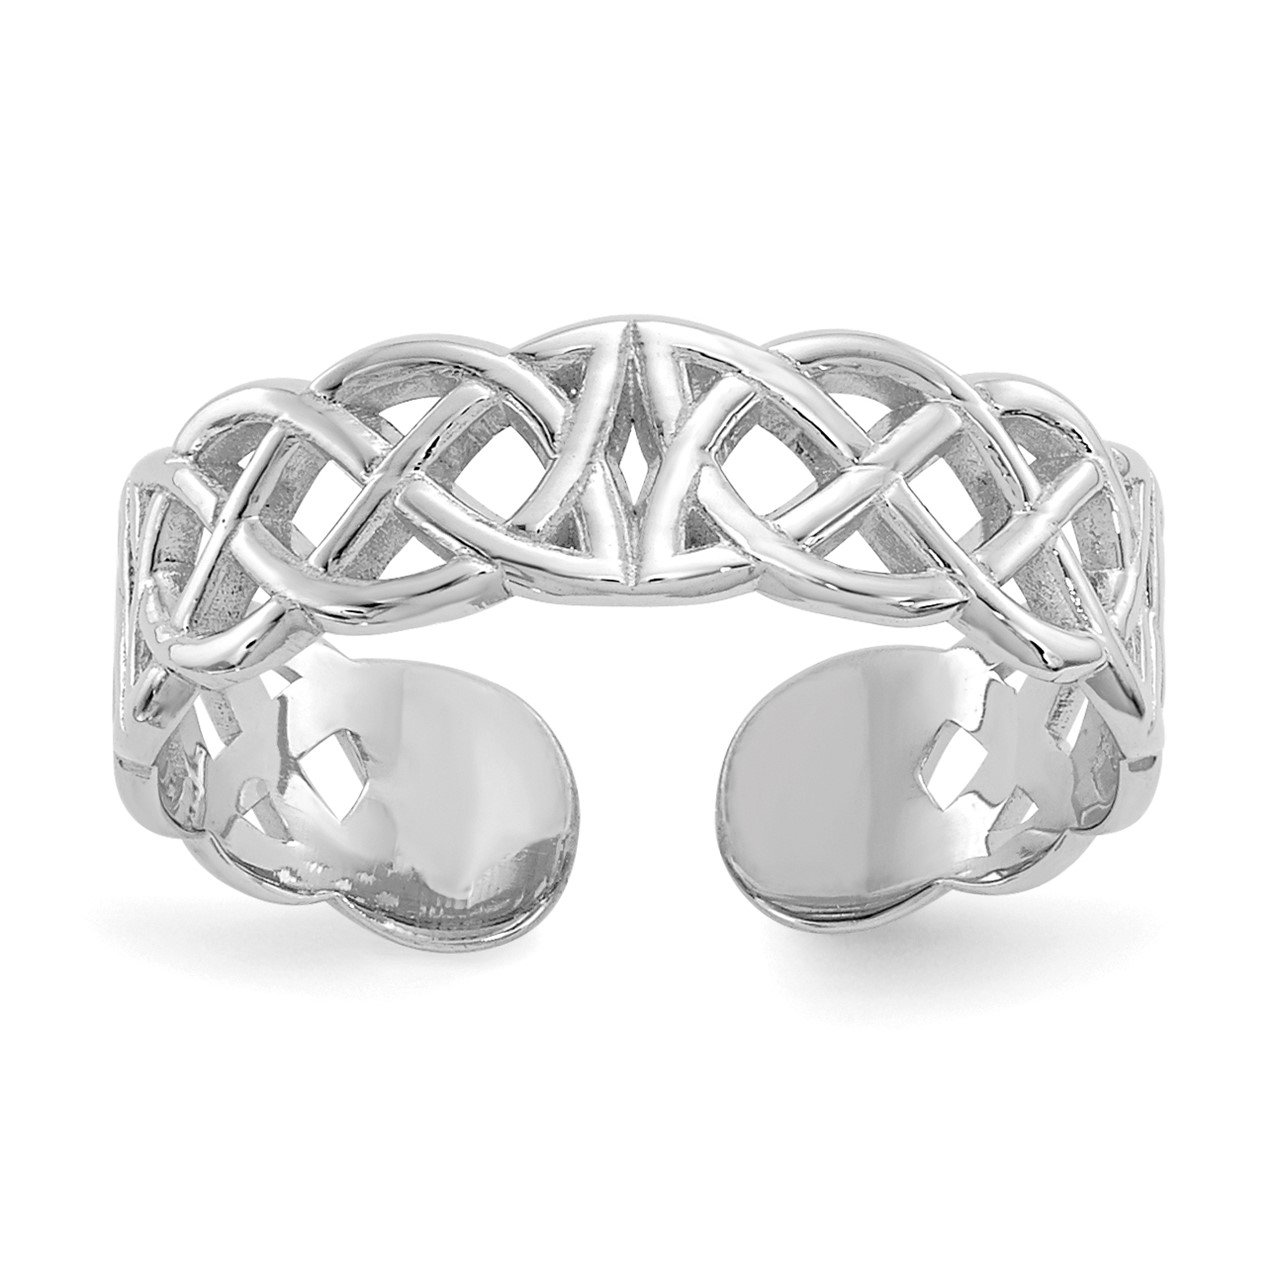 14k White Gold Polished with Design Toe Ring